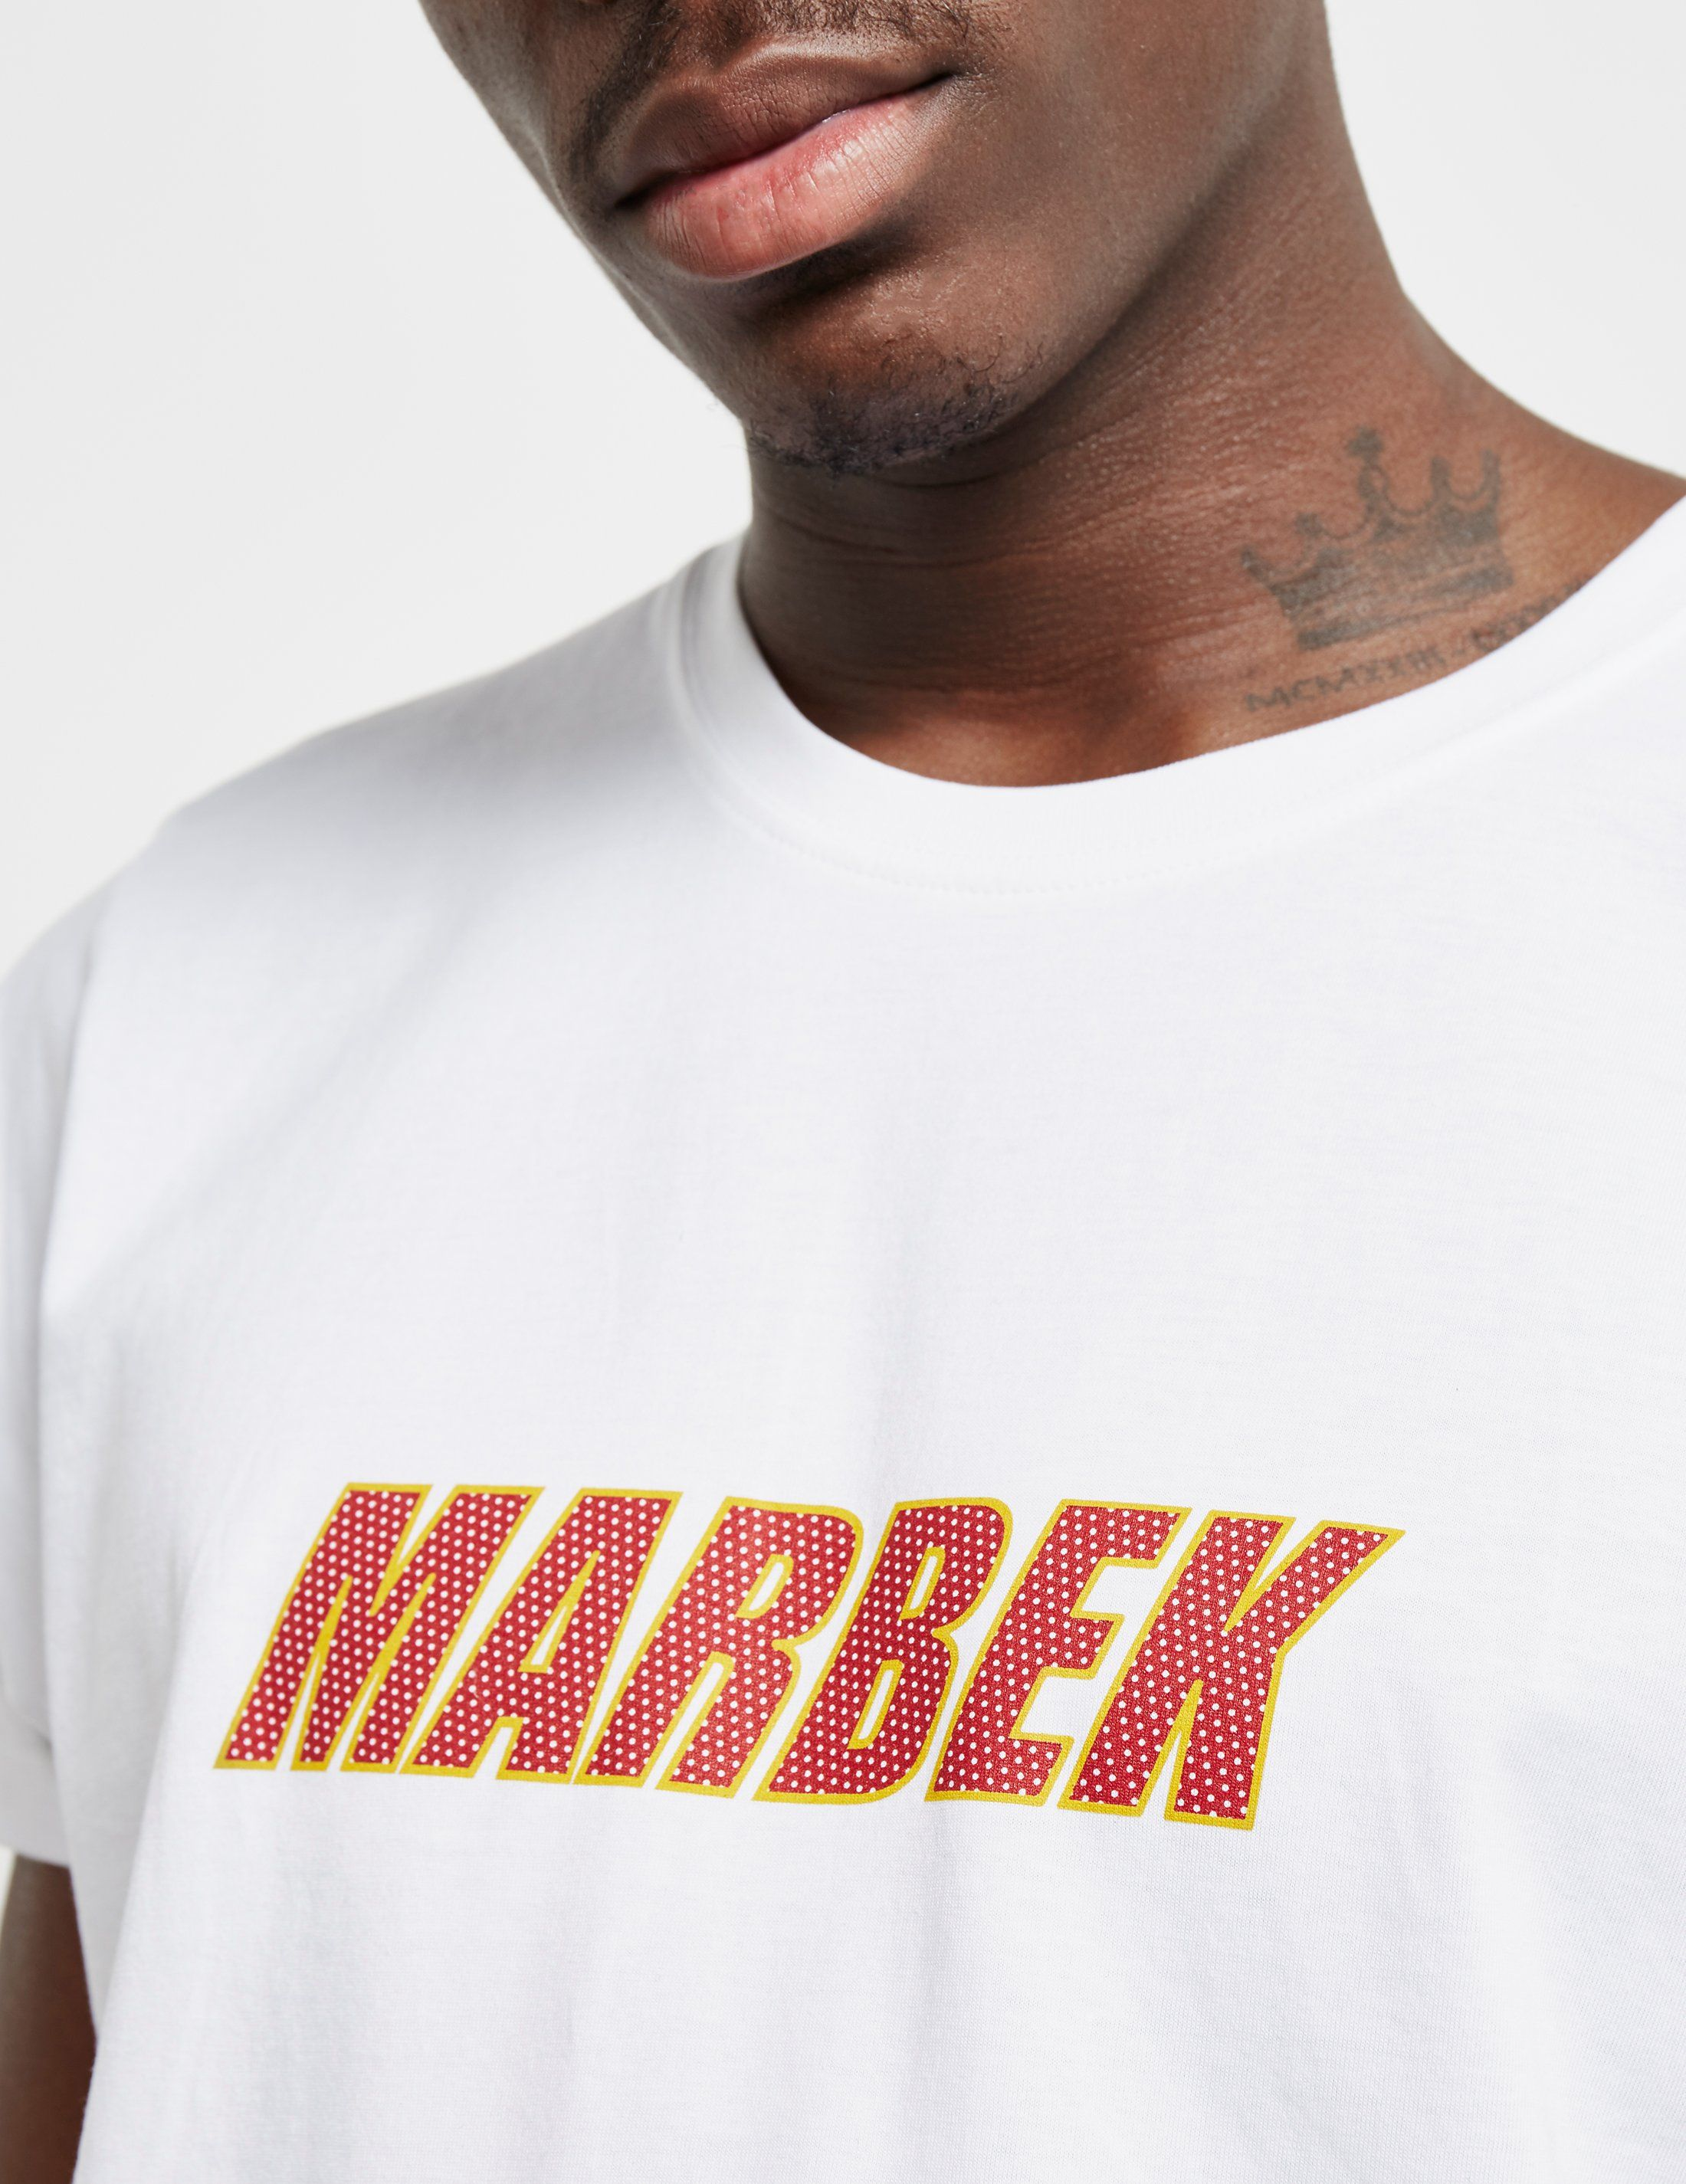 Marbek Retro Logo Short Sleeve T-Shirt - Exclusive